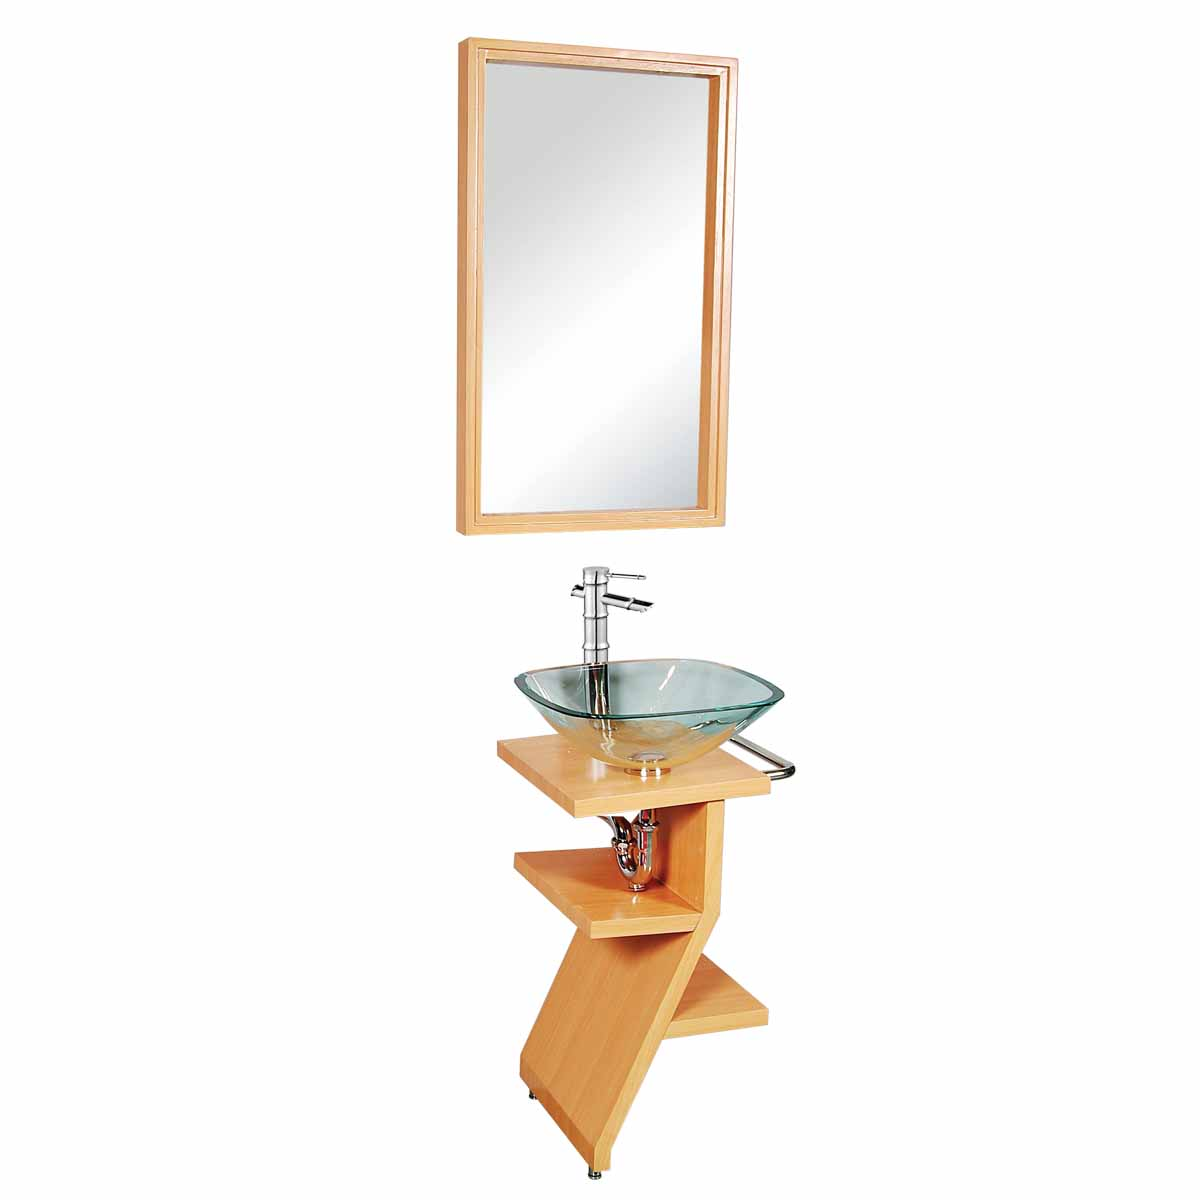 Bathroom Sink With Stand : Bathroom Glass Pedestal Sink Wood Stand Towel Bar